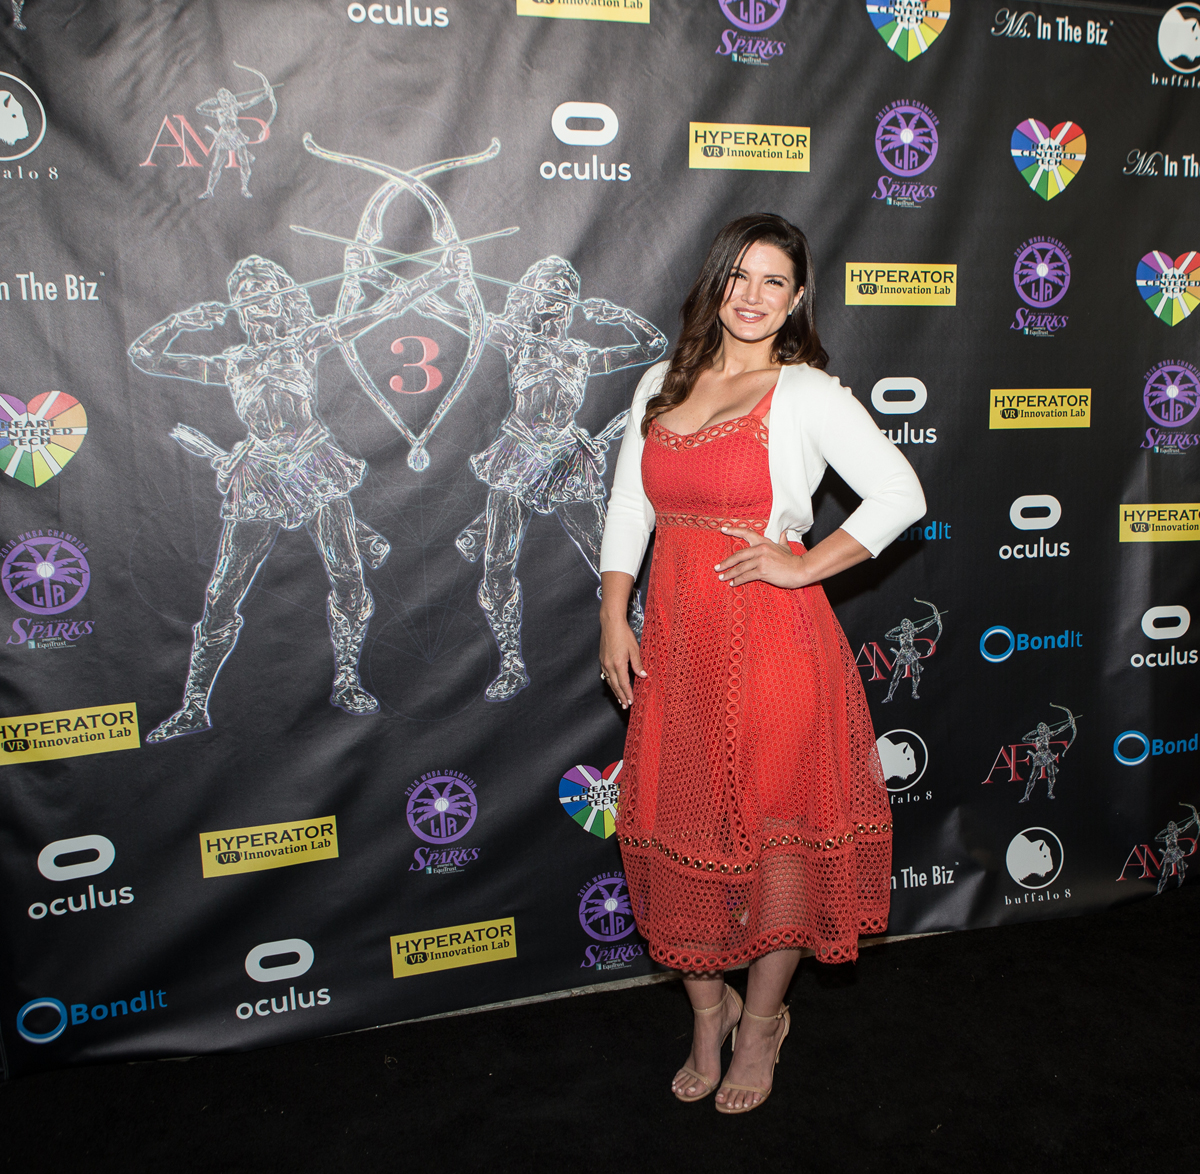 Gina Carano, 2017 Action Warrior Honoree